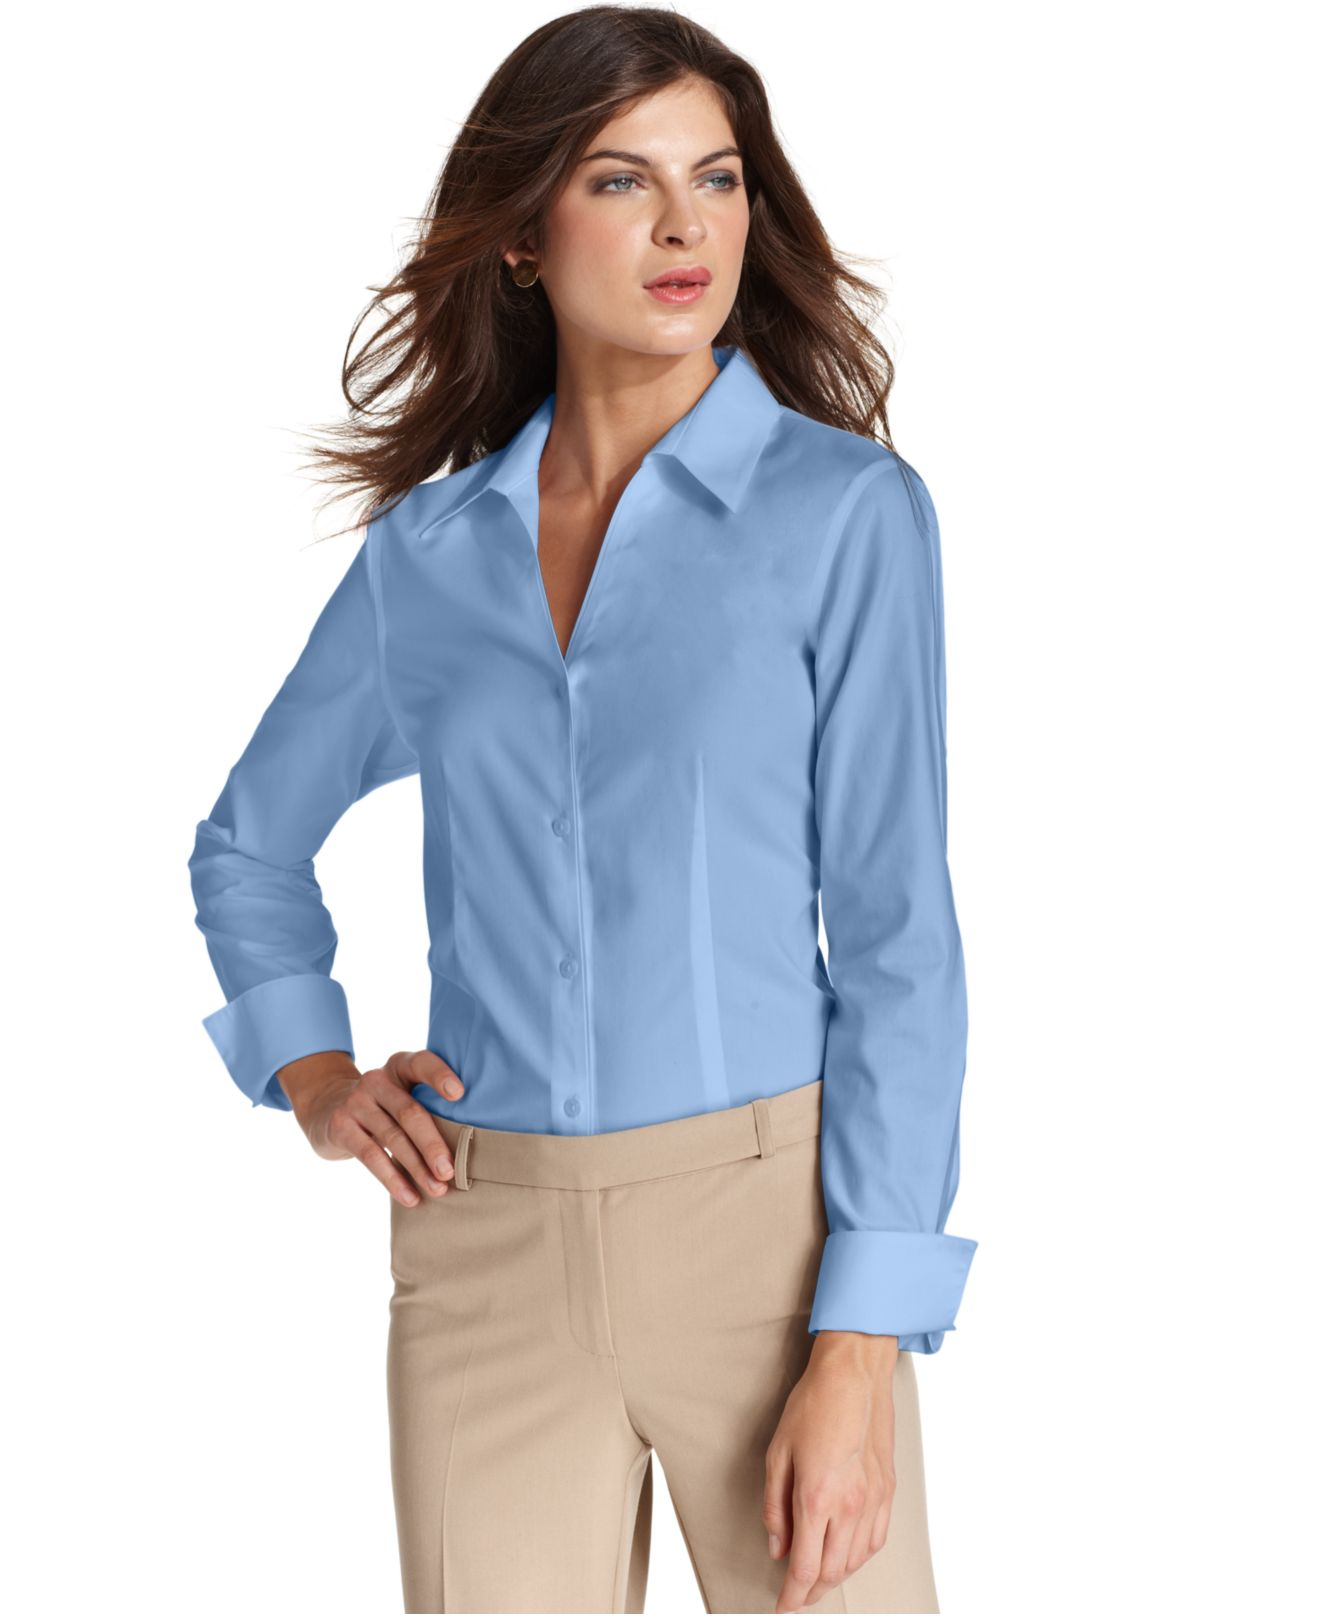 Jones new york long sleeve wrinkle resistant shirt in blue for New york and company dress shirts